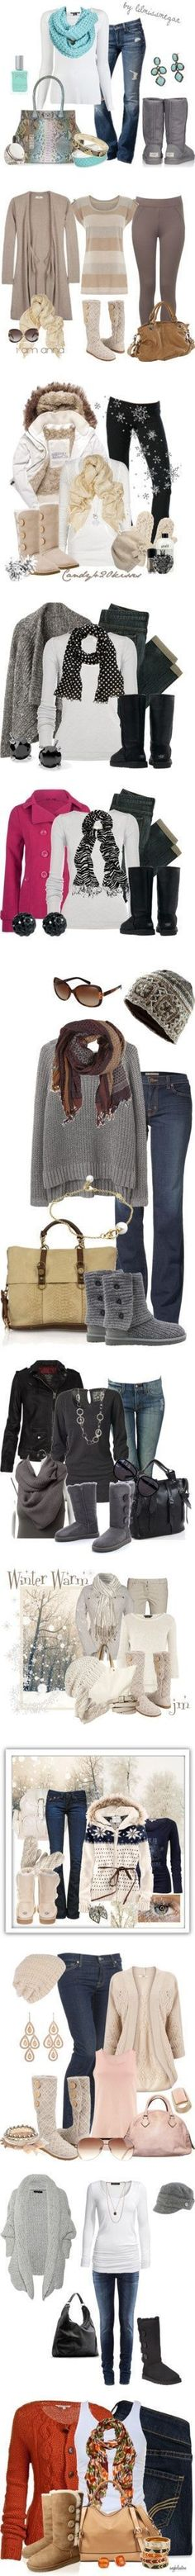 Cute and casual ugg boot outfits (winter/fall) by nataliexsnowxwhite on Polyvore ugg Cyber Monday View More: www.yi5.org Check our selection UGG articles in our shop!